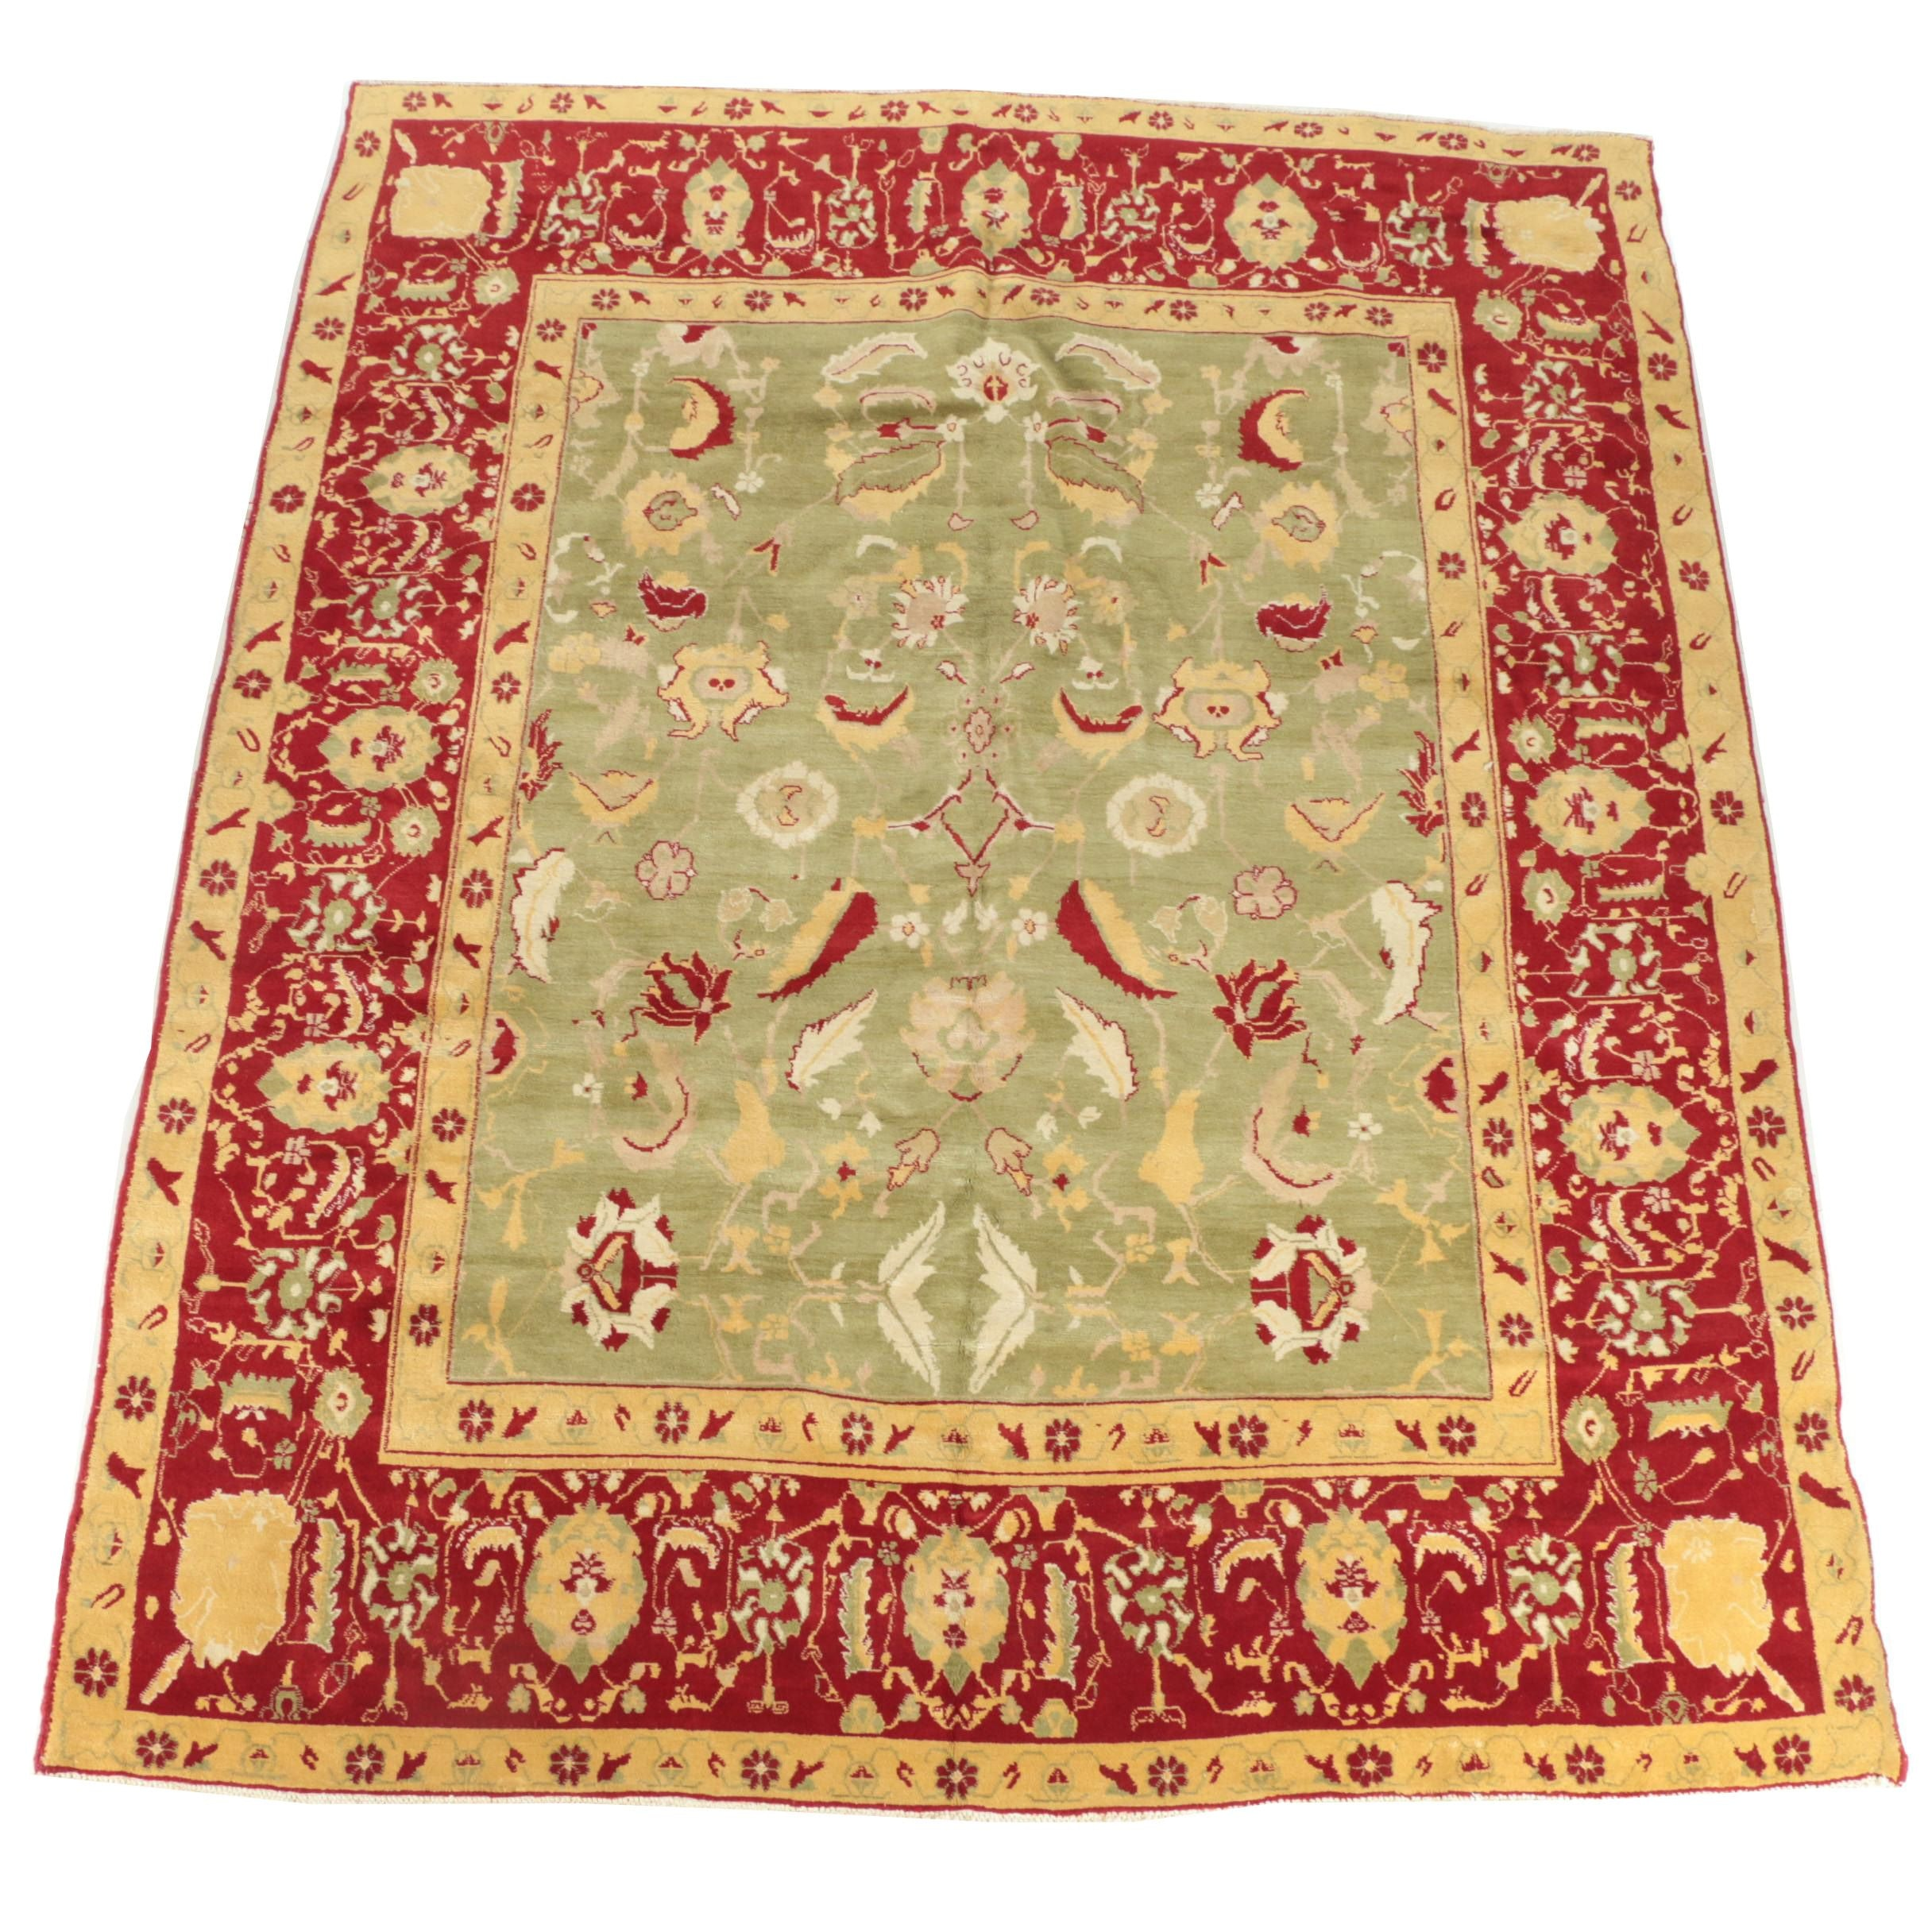 Hand-Knotted Indo-Oushak Wool Room Sized Rug